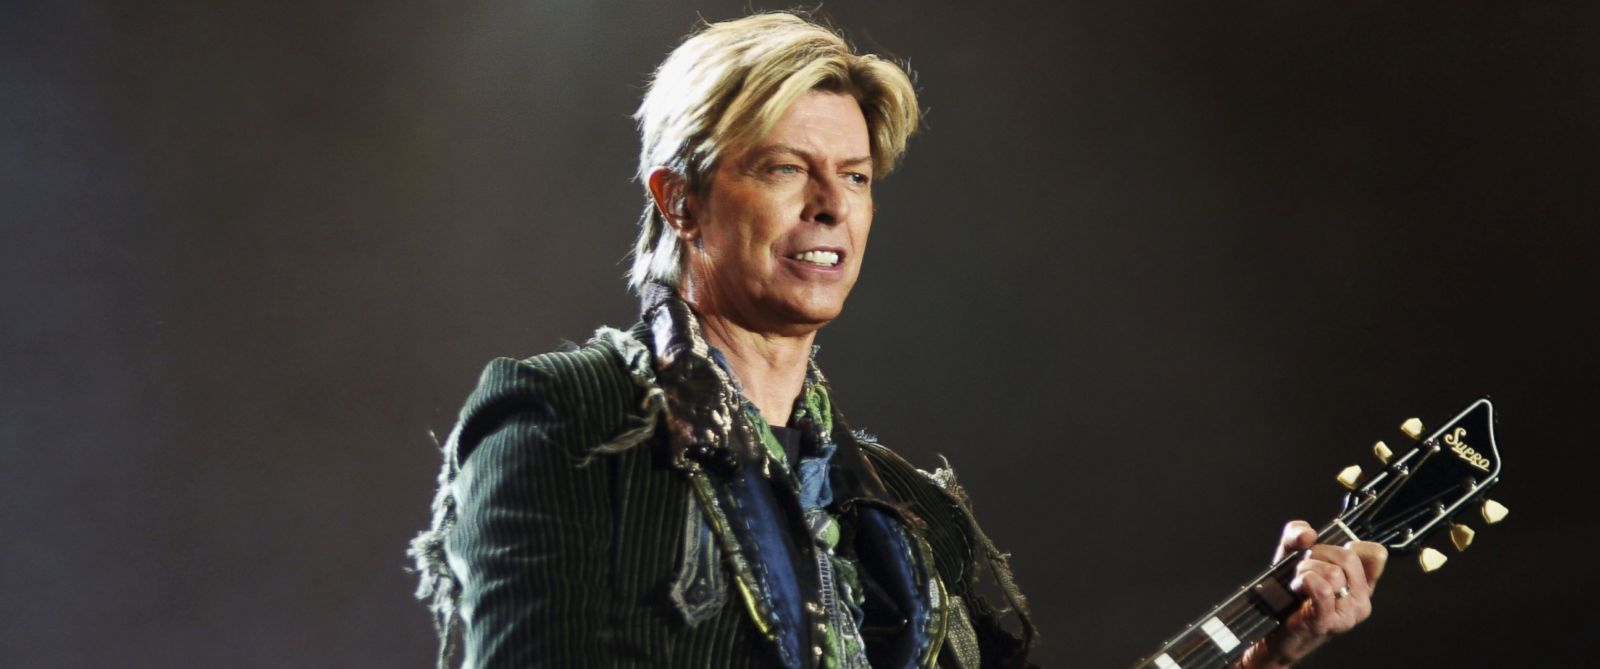 PHOTO: David Bowie performs on stage at the The Nokia Isle of Wight Festival, June 13, 2004 in Newport, U.K.